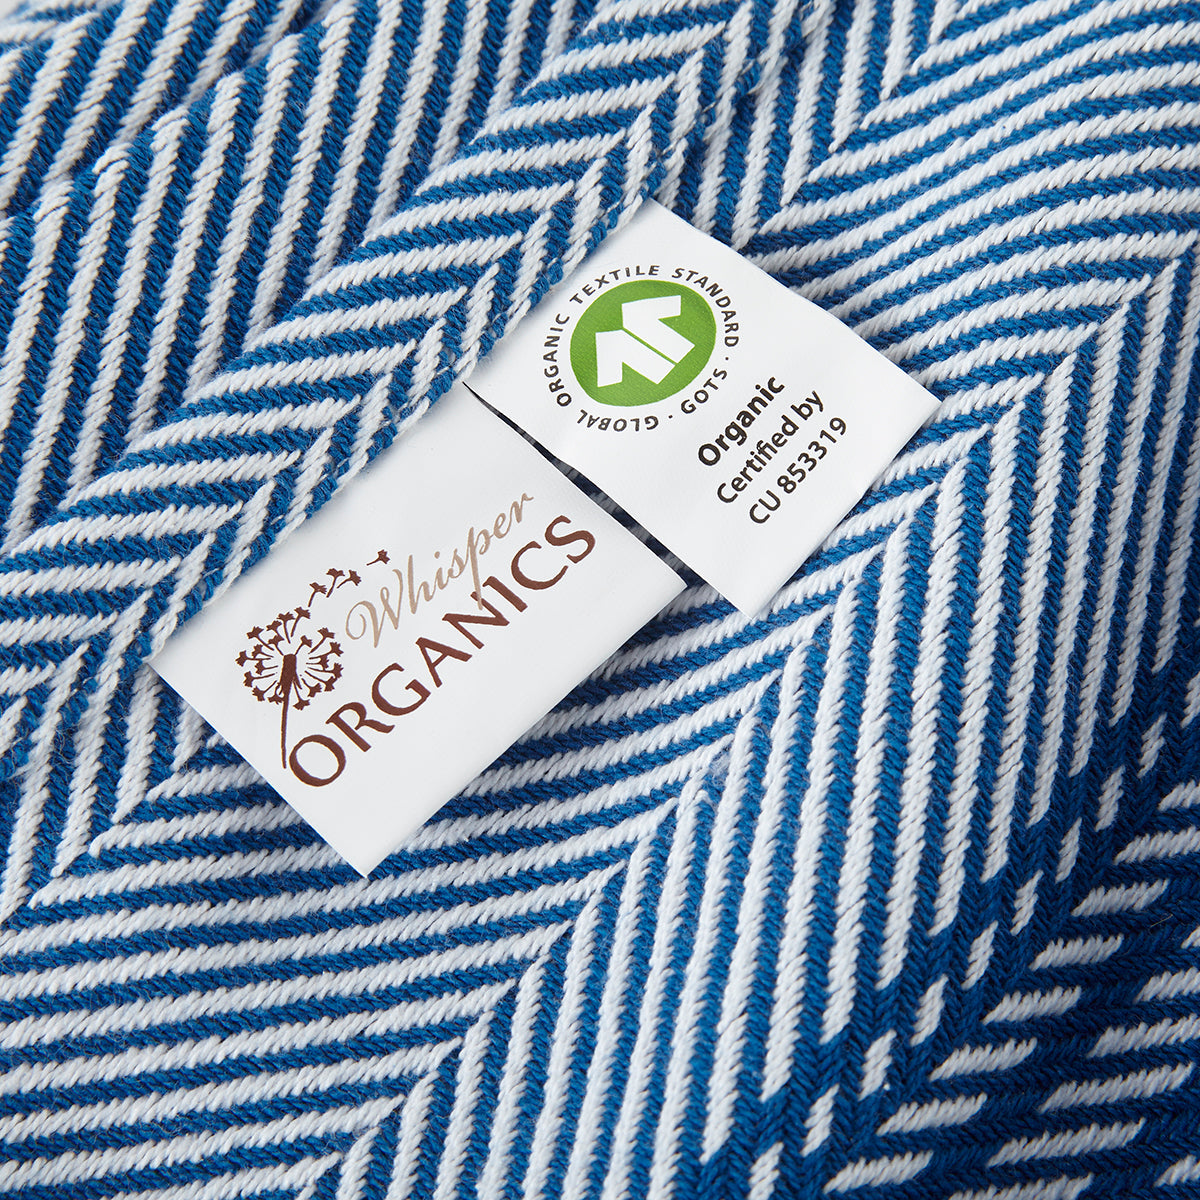 Organic Herringbone Weave Throw Blanket